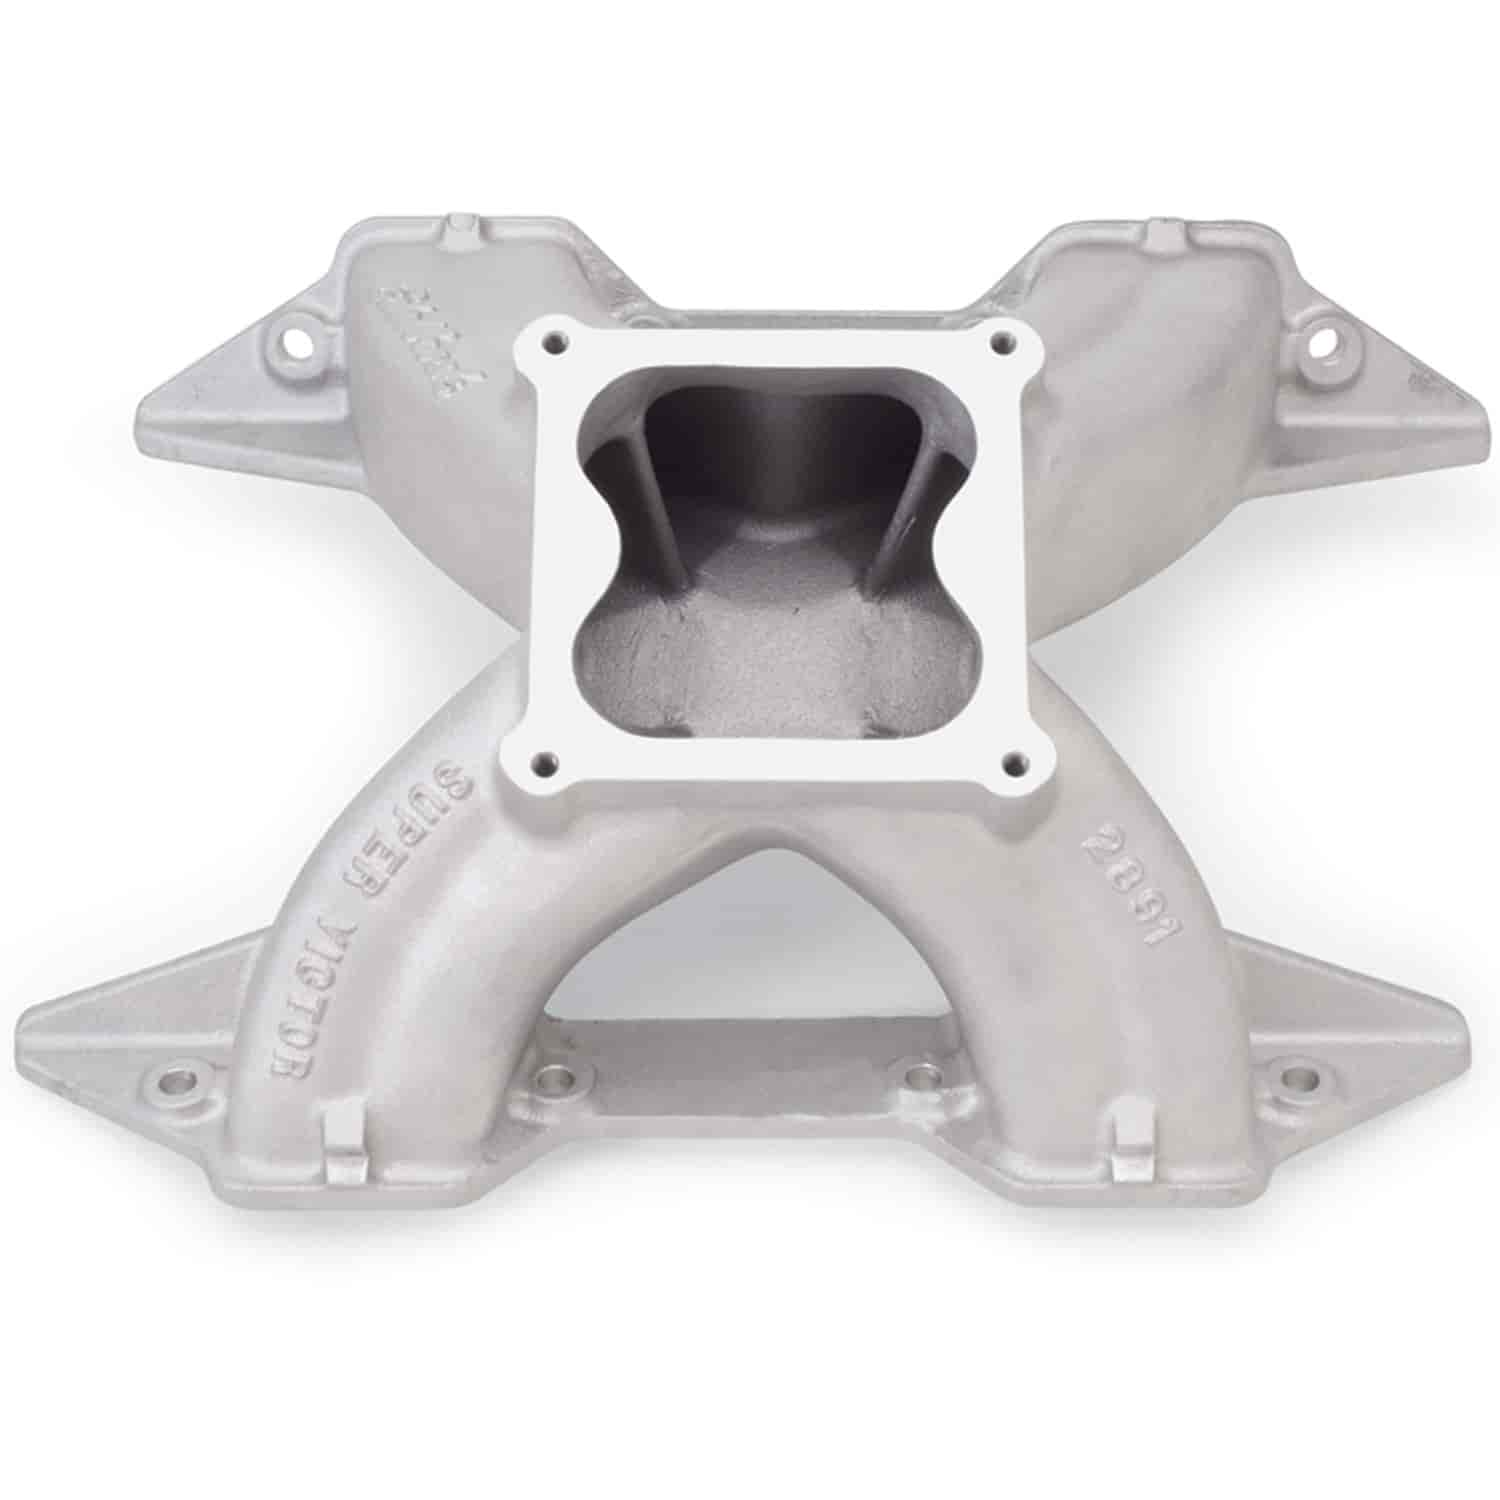 Edelbrock 2891 - Edelbrock Victor Series Intake Manifolds for Chrysler/Mopar